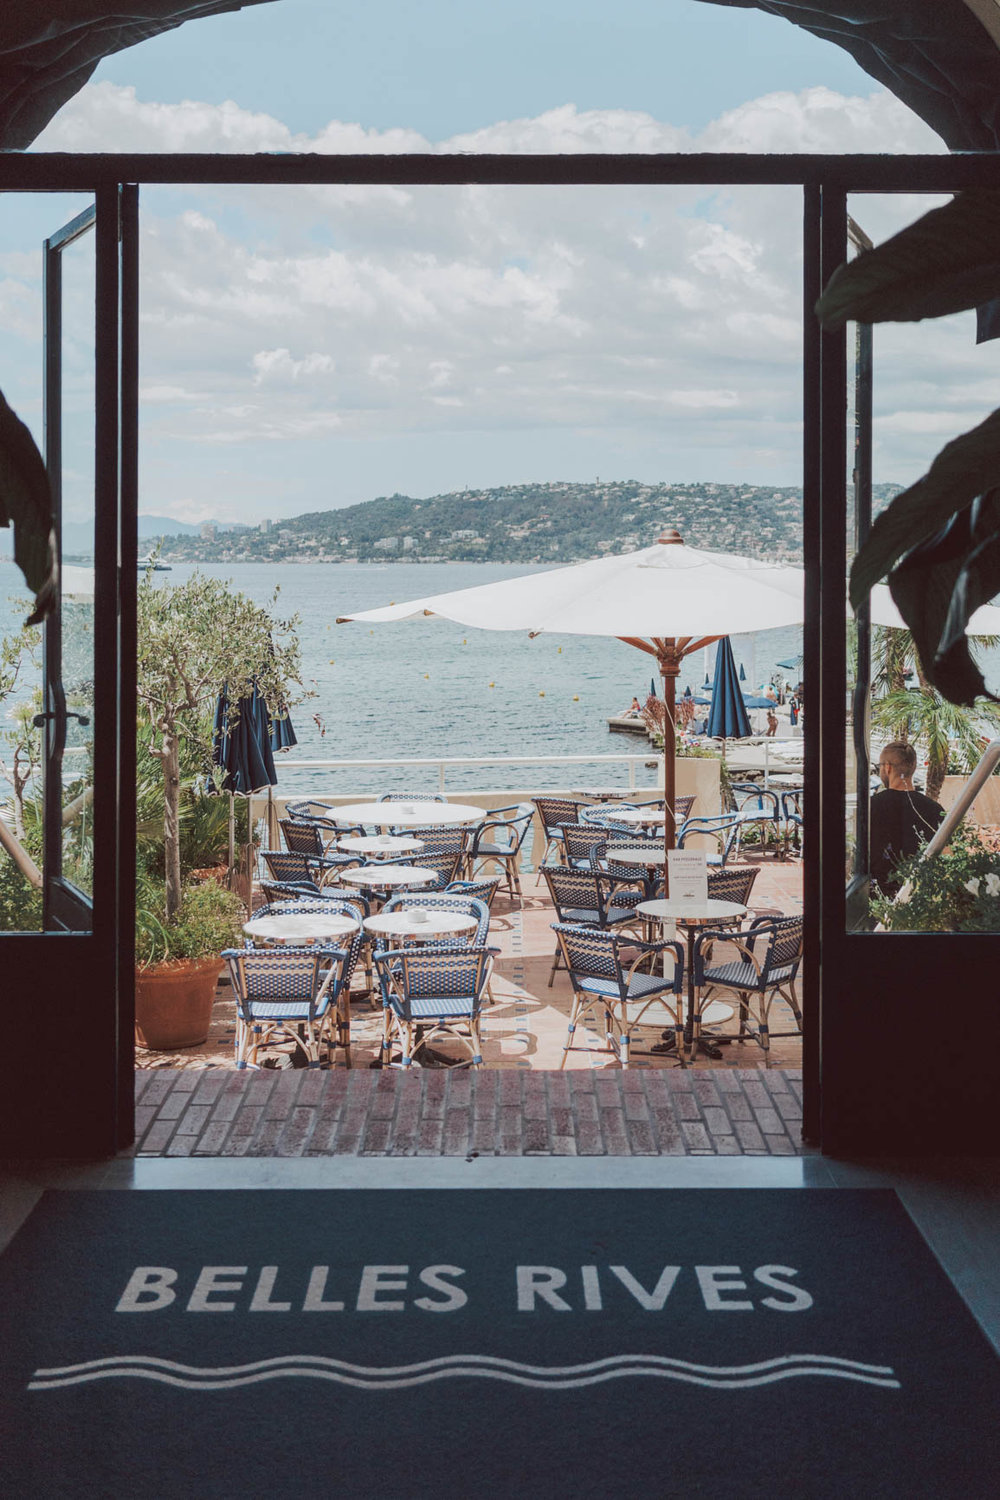 Antibes Cap d'Antibes  Cote d'Azur  Itinerary - 10 Days in Provence Road Trip